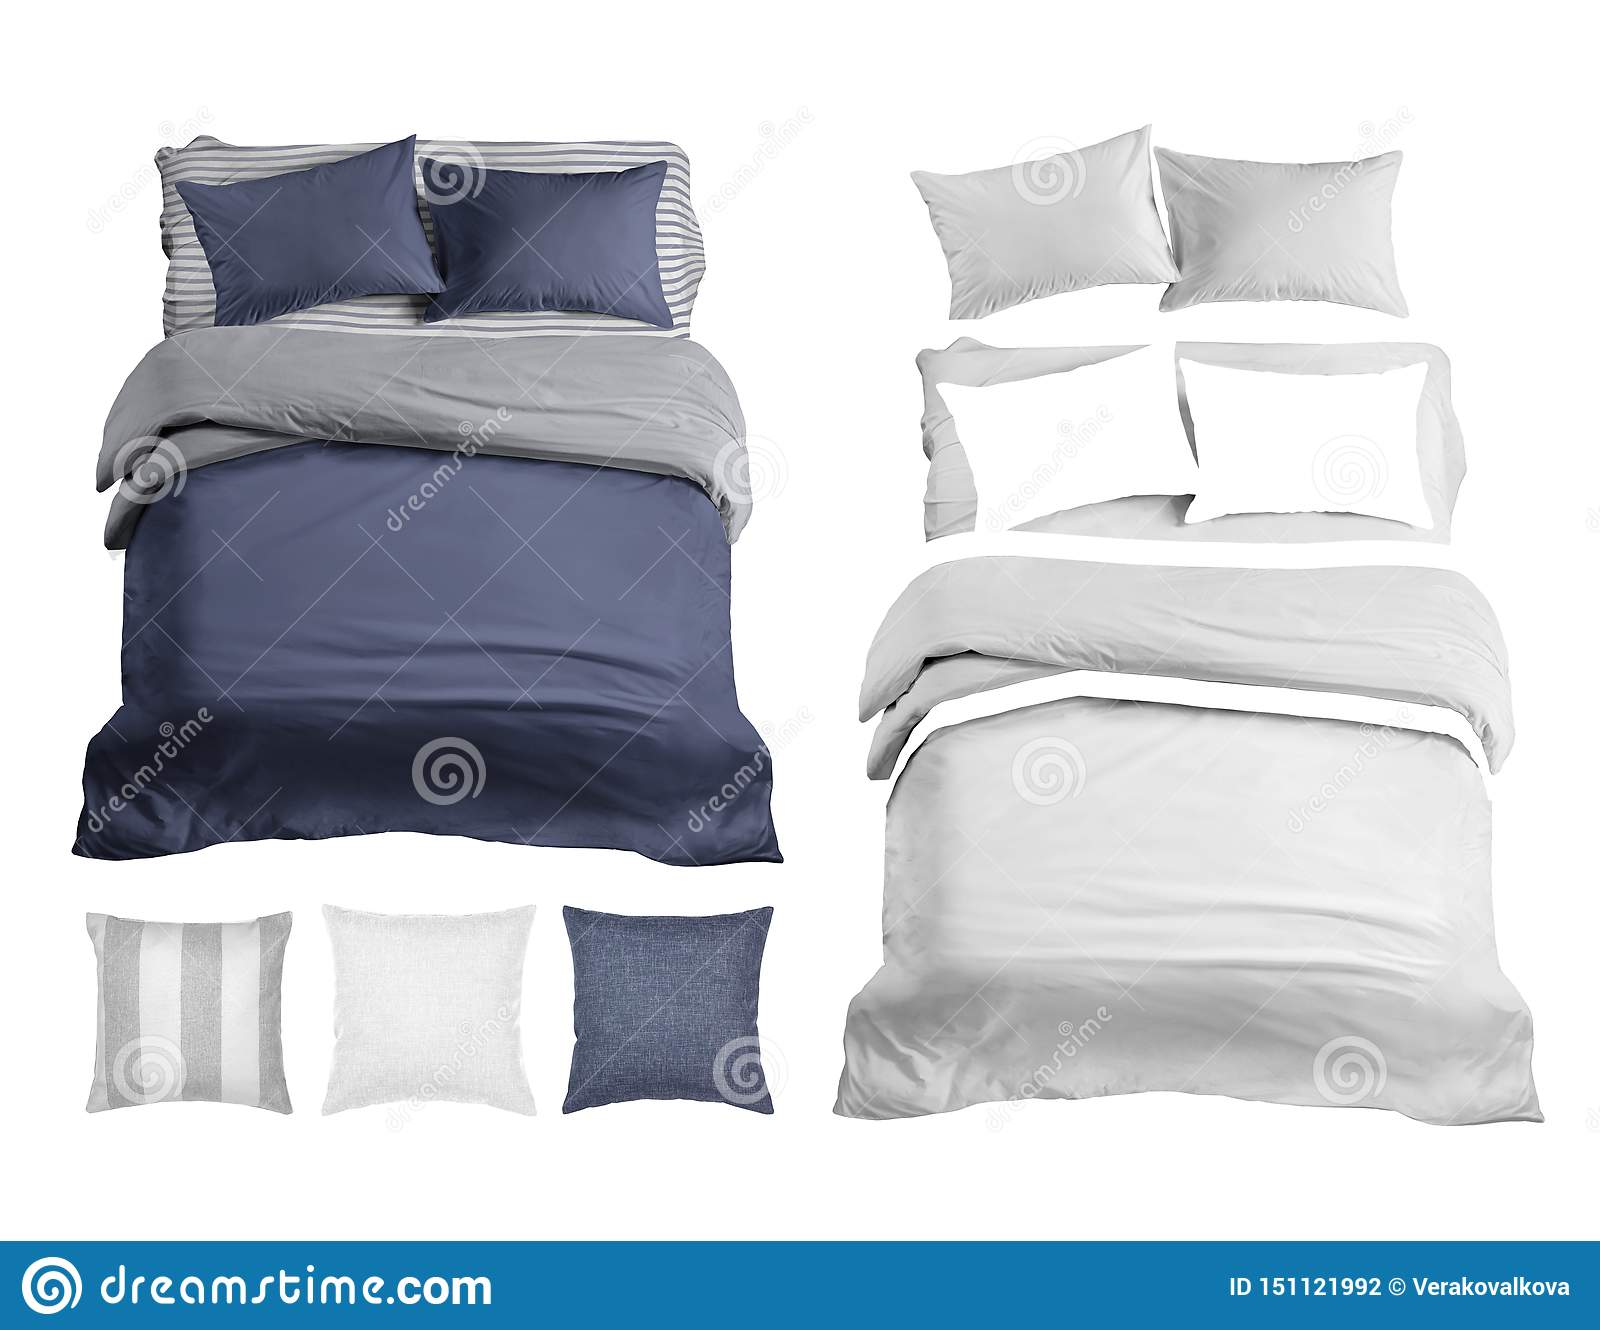 Set of bedding items mockup. Bed linen top view